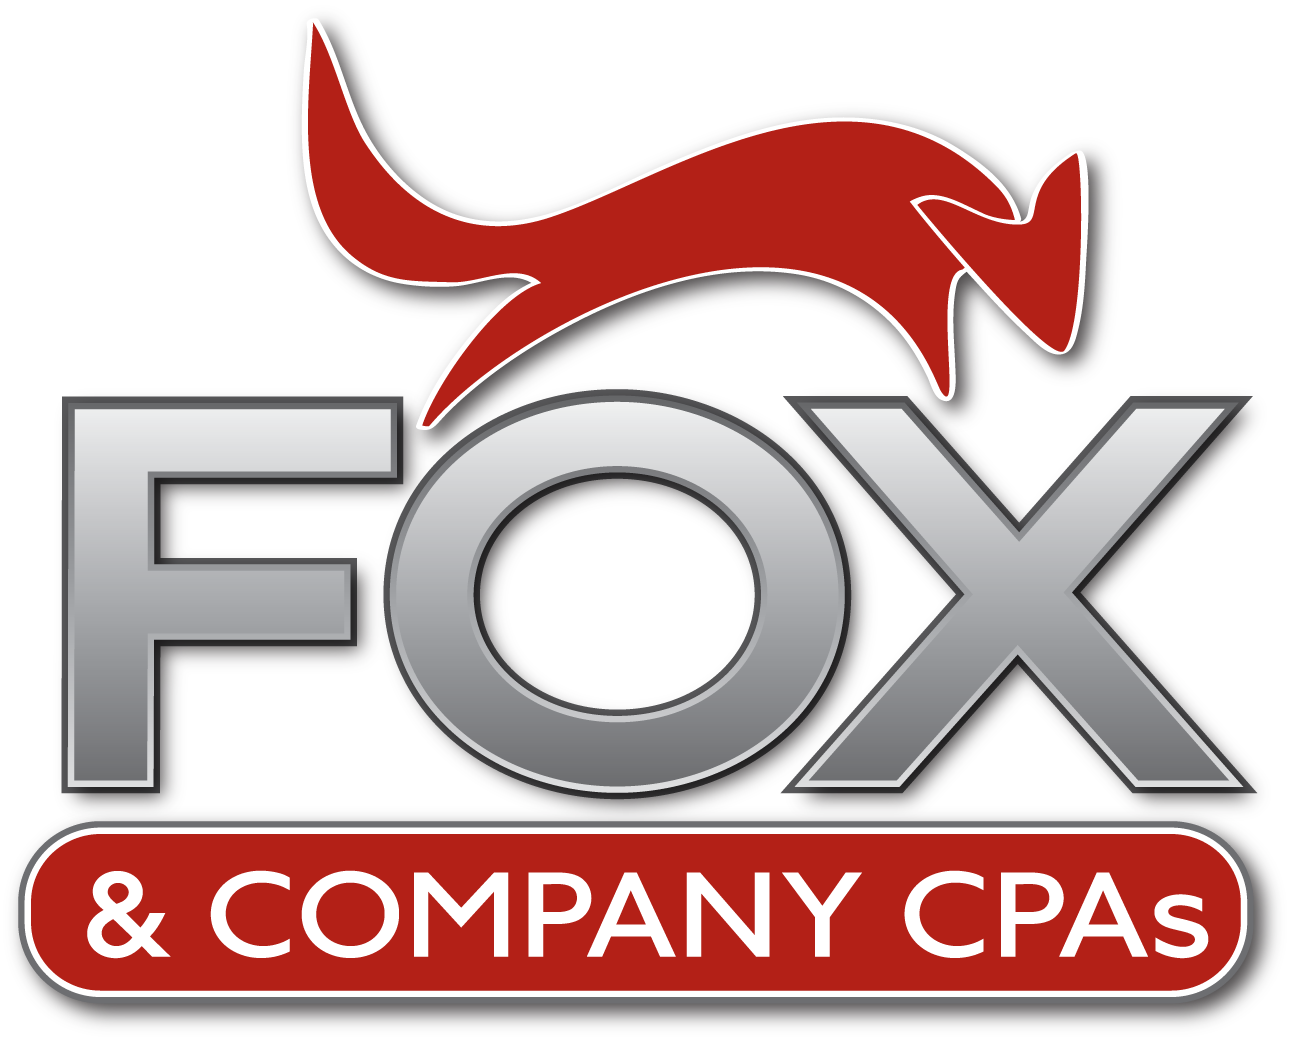 Fox & Co CPAs